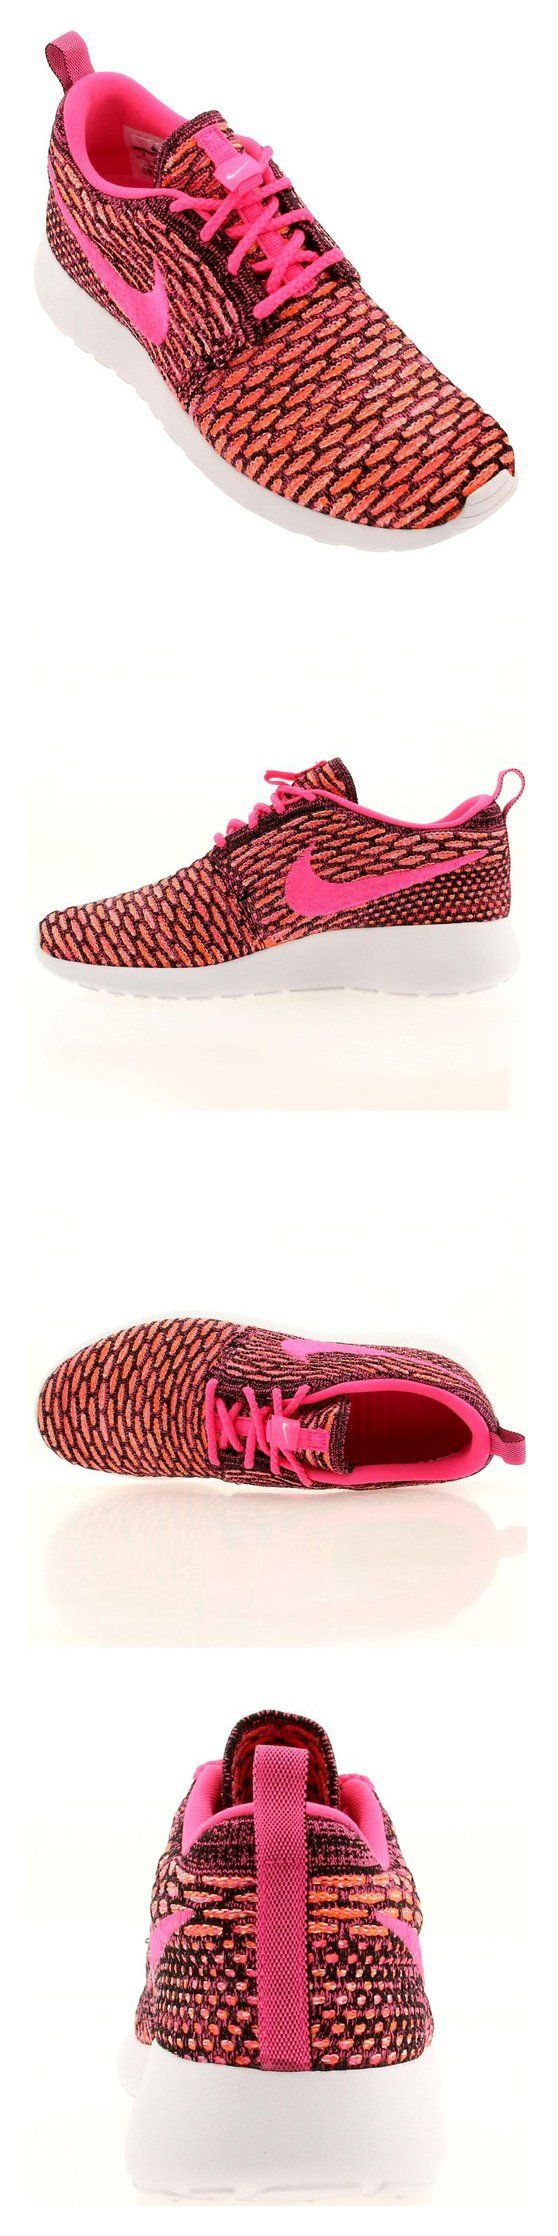 $120 - Nike Womens WMNS Rosherun Flyknit Black/Pink Pow-White-Total Orange Synthetic Size 6.5 Running #shoes #nike #2011